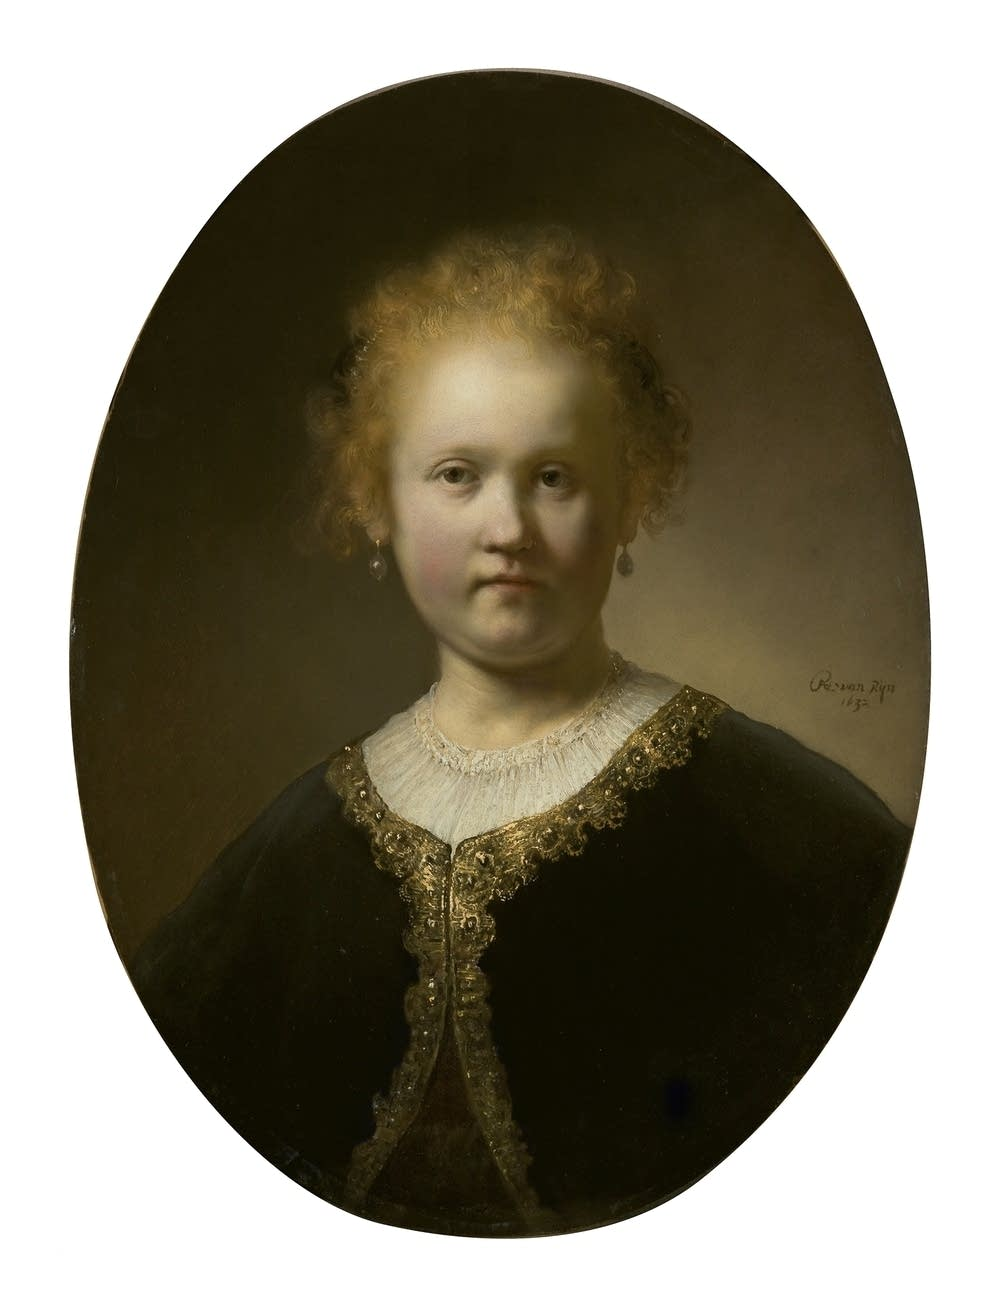 'Portrait of a Girl Wearing a Gold-Trimmed Cloak'